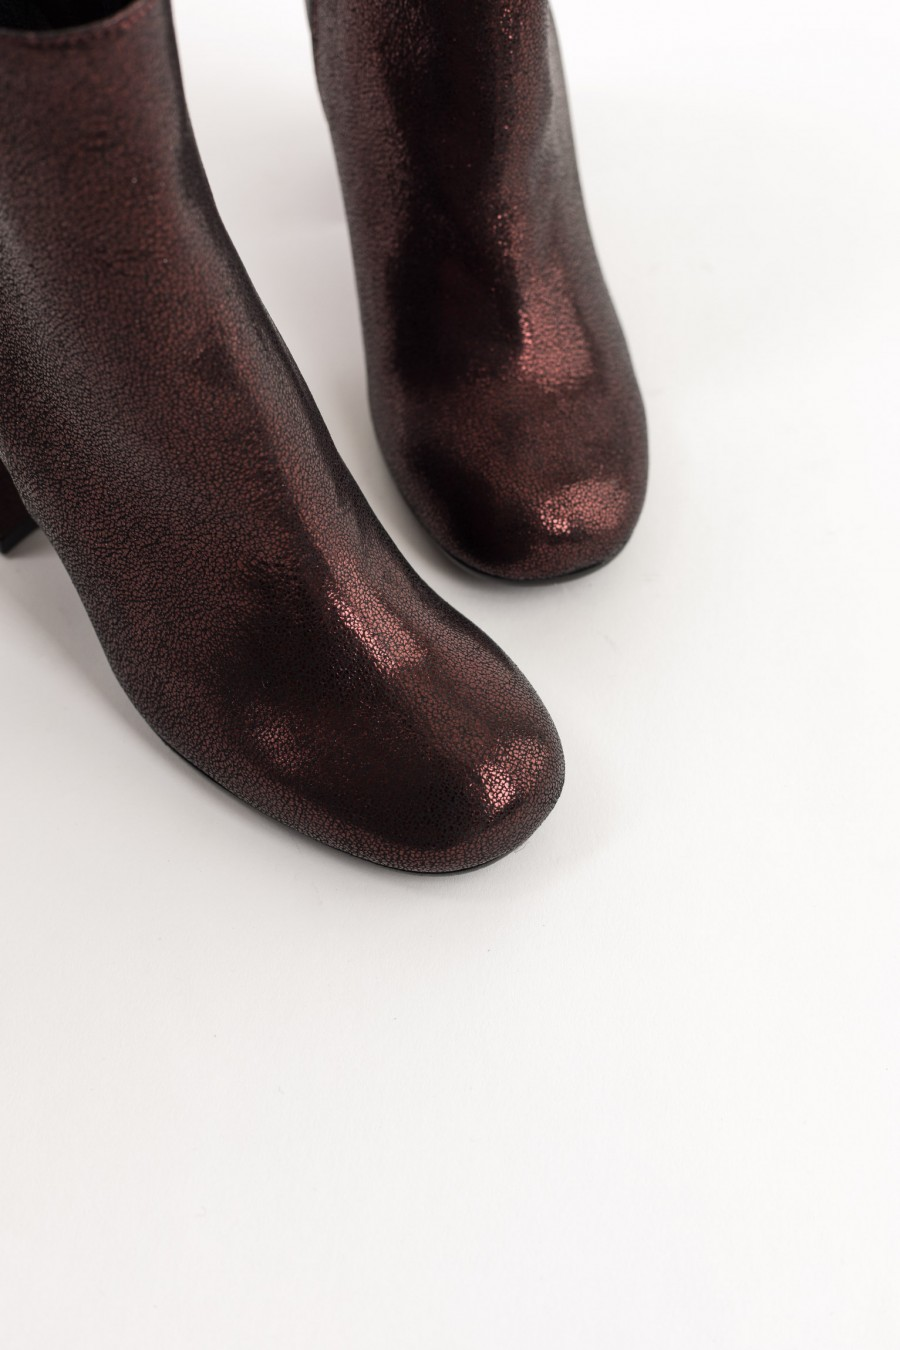 Burgundy rounded toe ankle boots